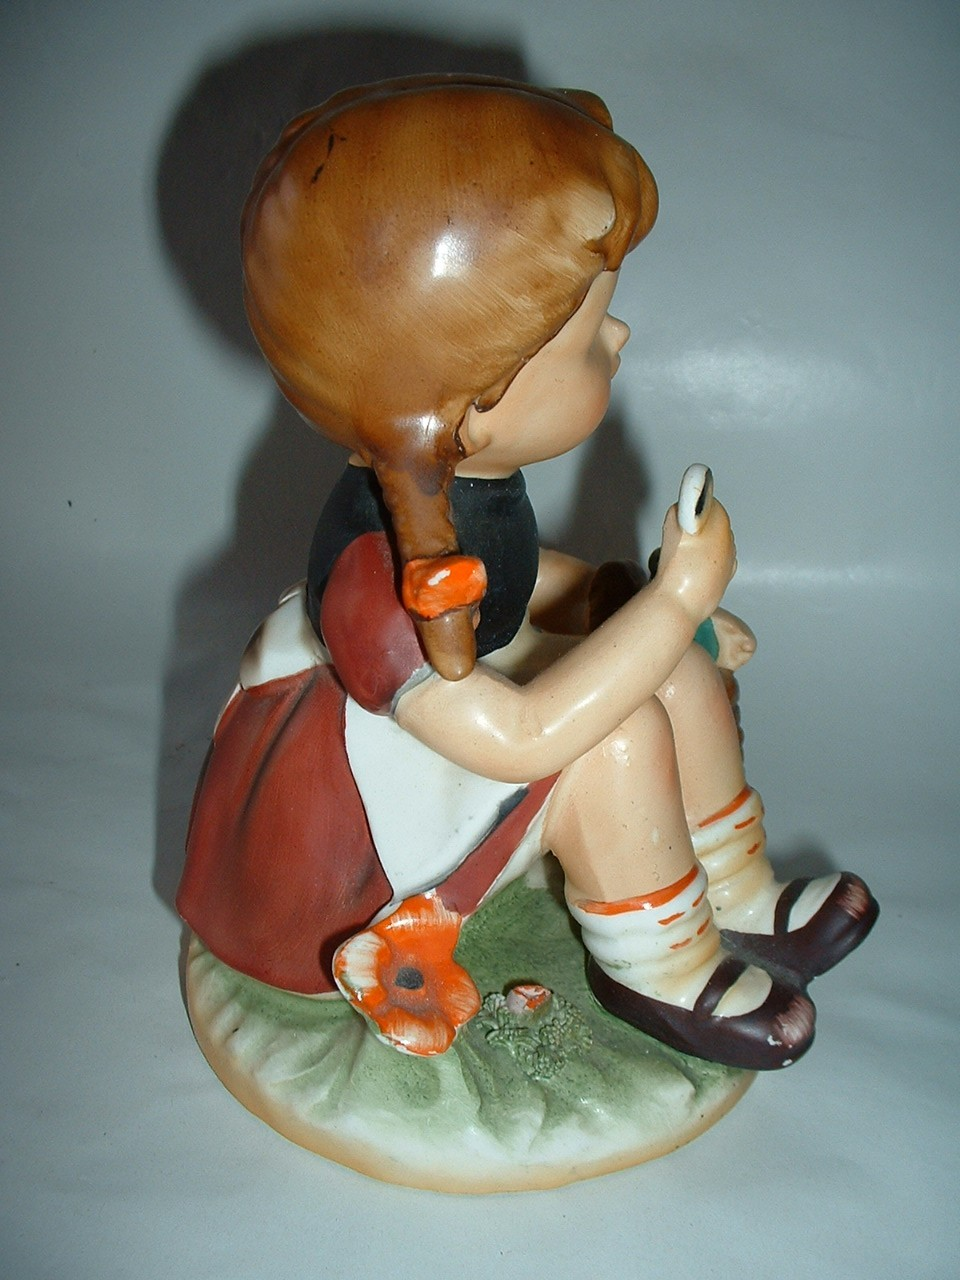 Vintage Large Porcelain Figurine  Child Sitting with Basket E-6280 SIT